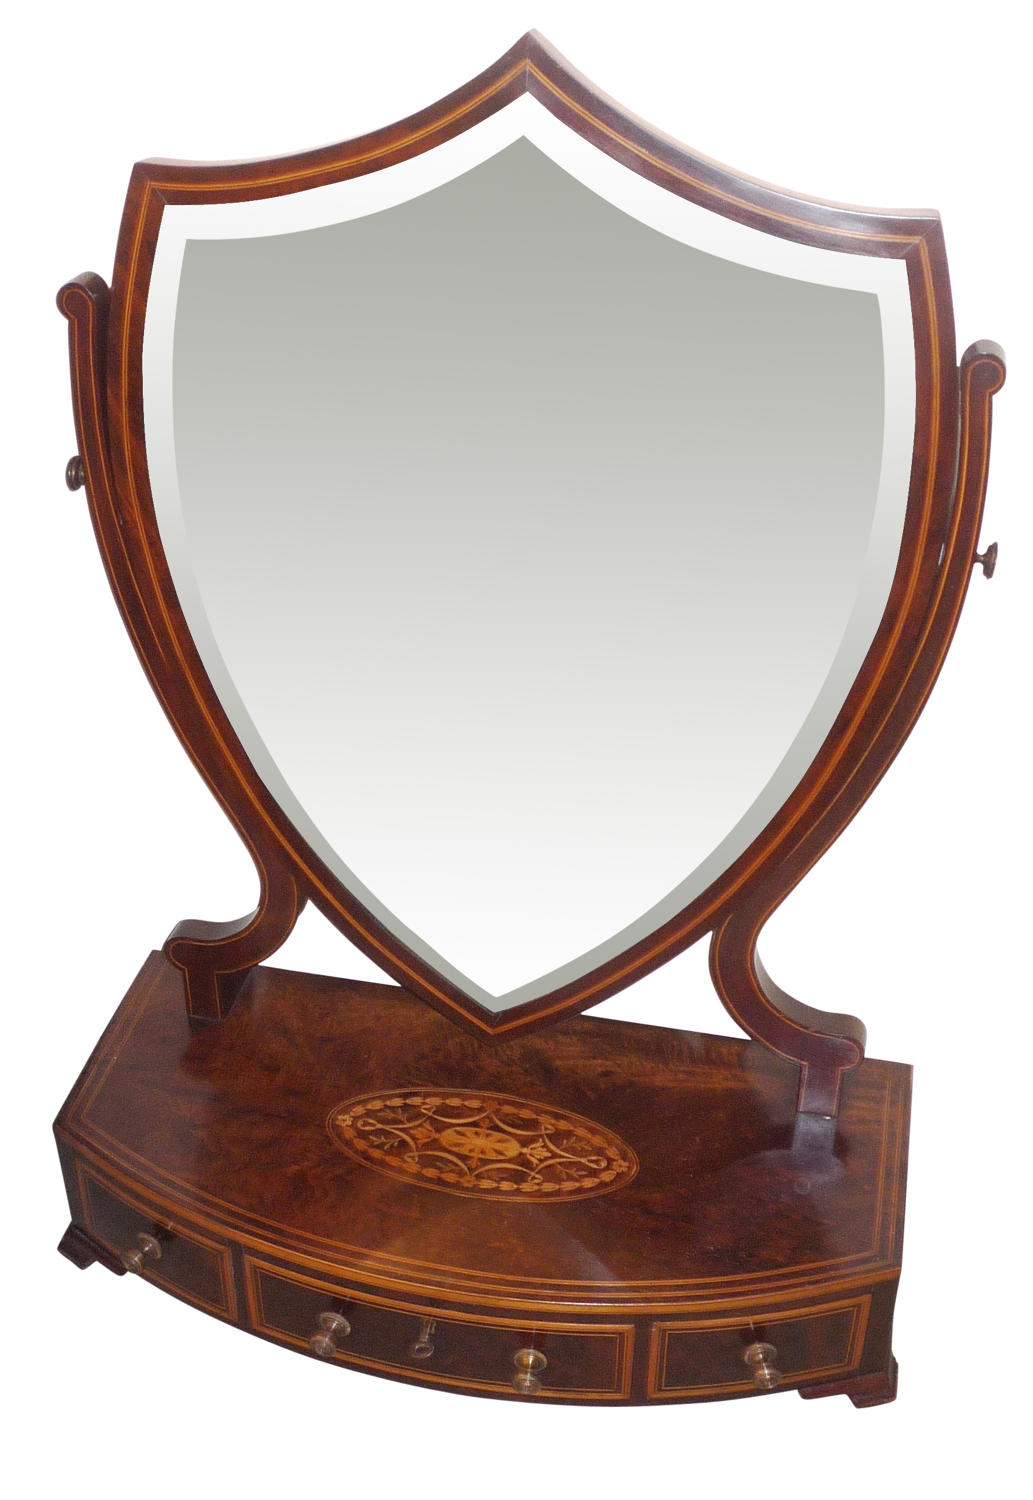 Inlaid mahogany toilet mirror Maple & Co